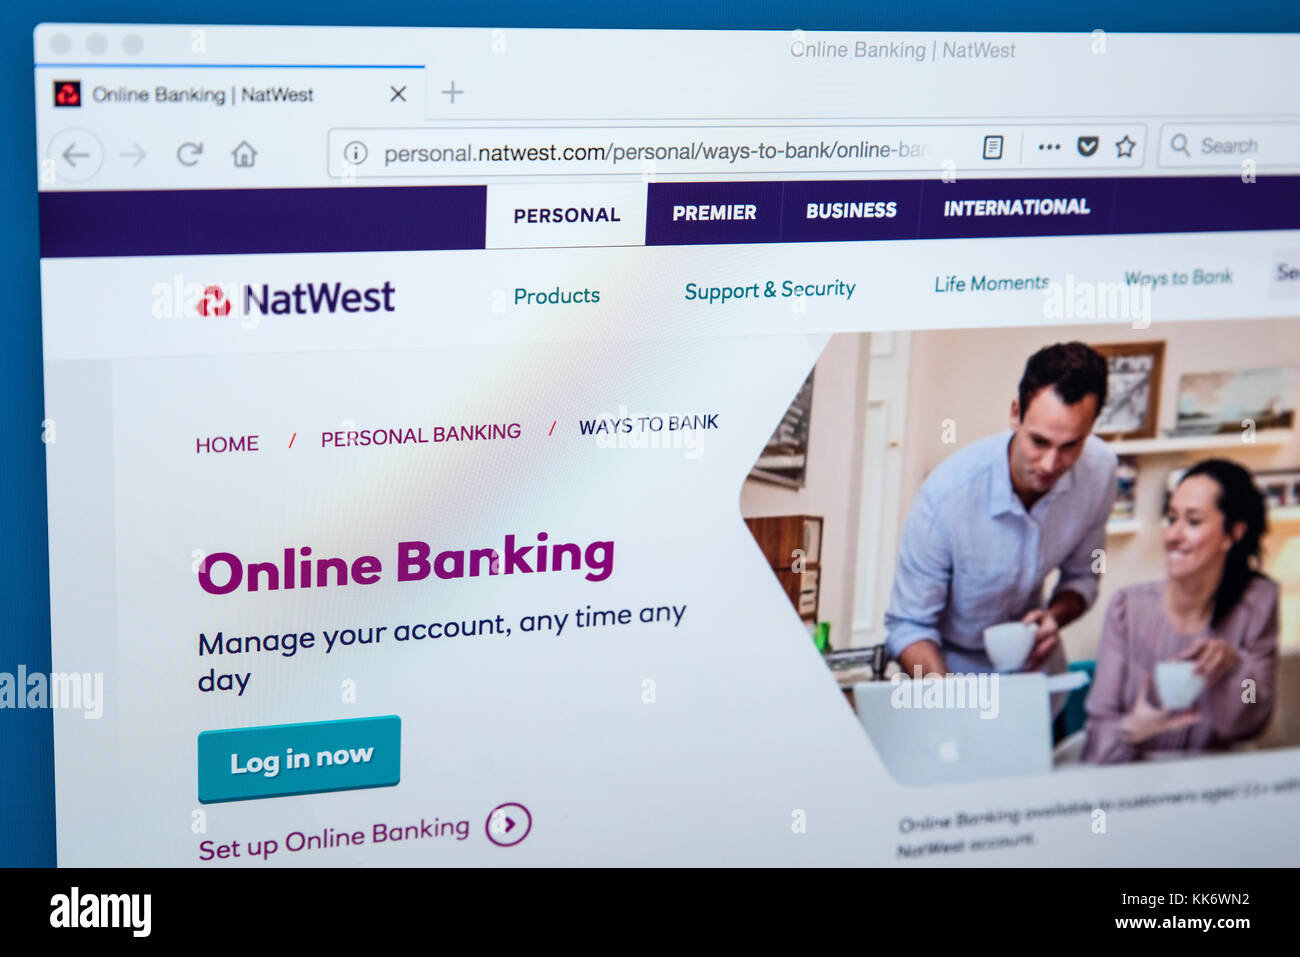 LONDON, UK - NOVEMBER 22ND 2017: The homepage of the Online Banking area on the Natwest bank website, on 22nd November - Stock Image